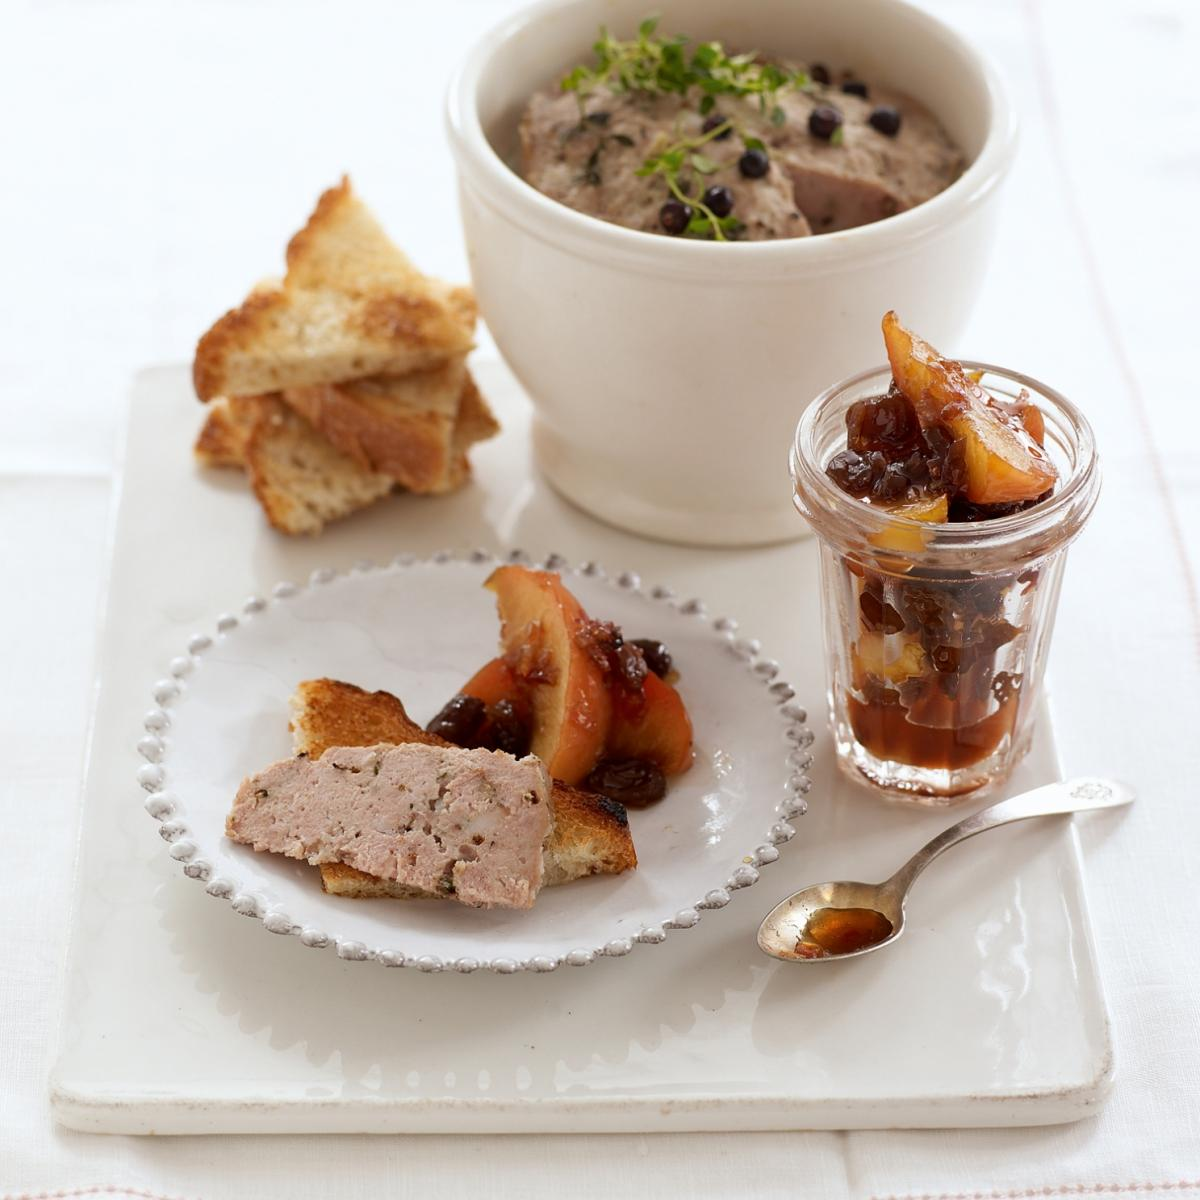 A picture of Delia's Potted Pork with Juniper and Thyme, with a Marmalade of Apples, Raisins and Shallots recipe